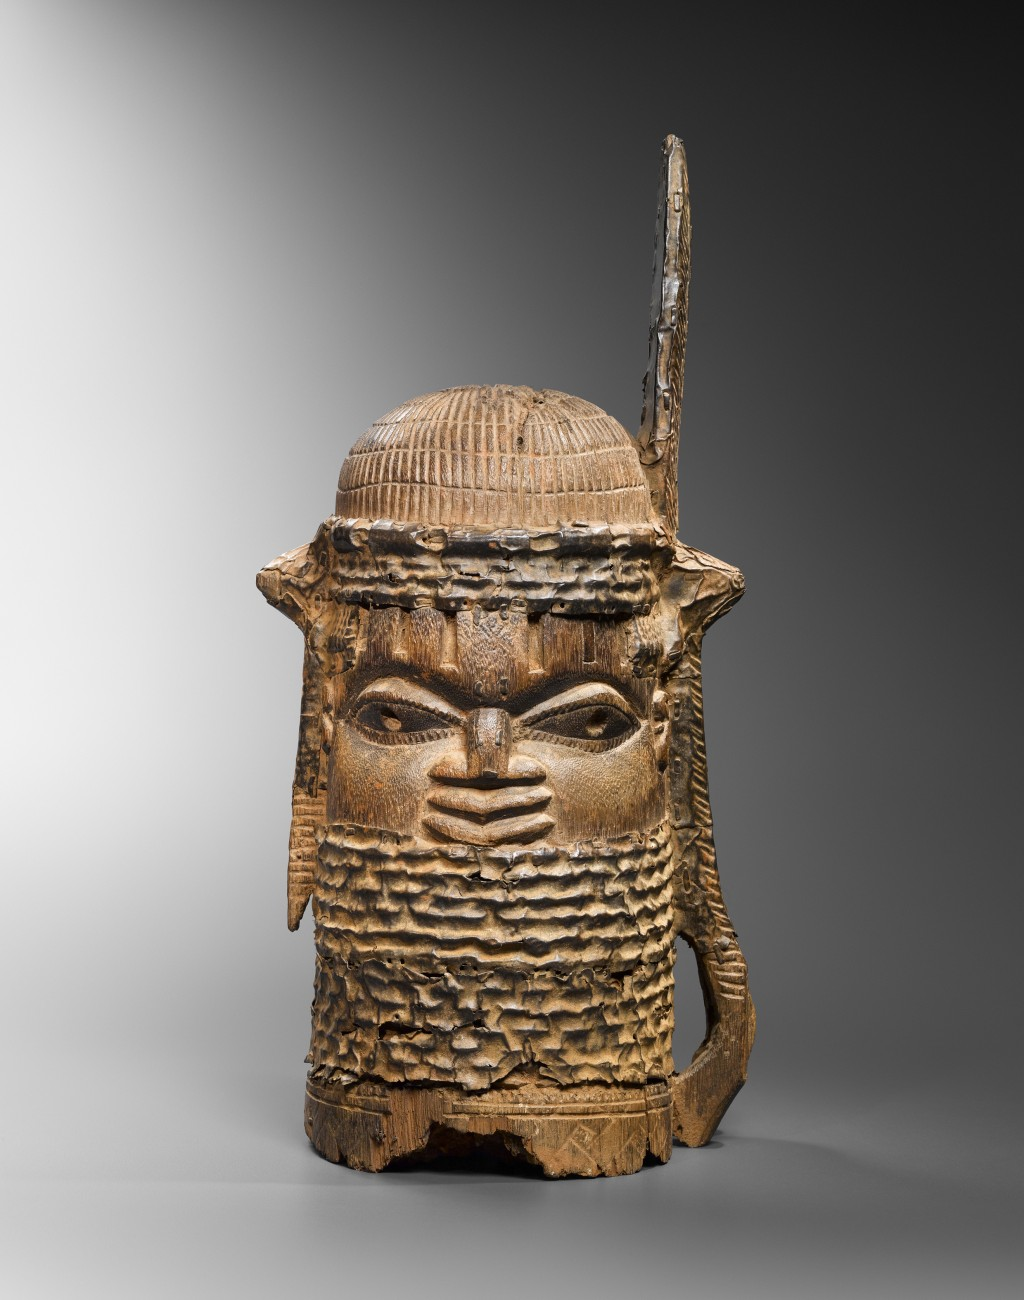 Benin head, Nigeria Wood and metal - height 54 cm Provenance: Old European Collection